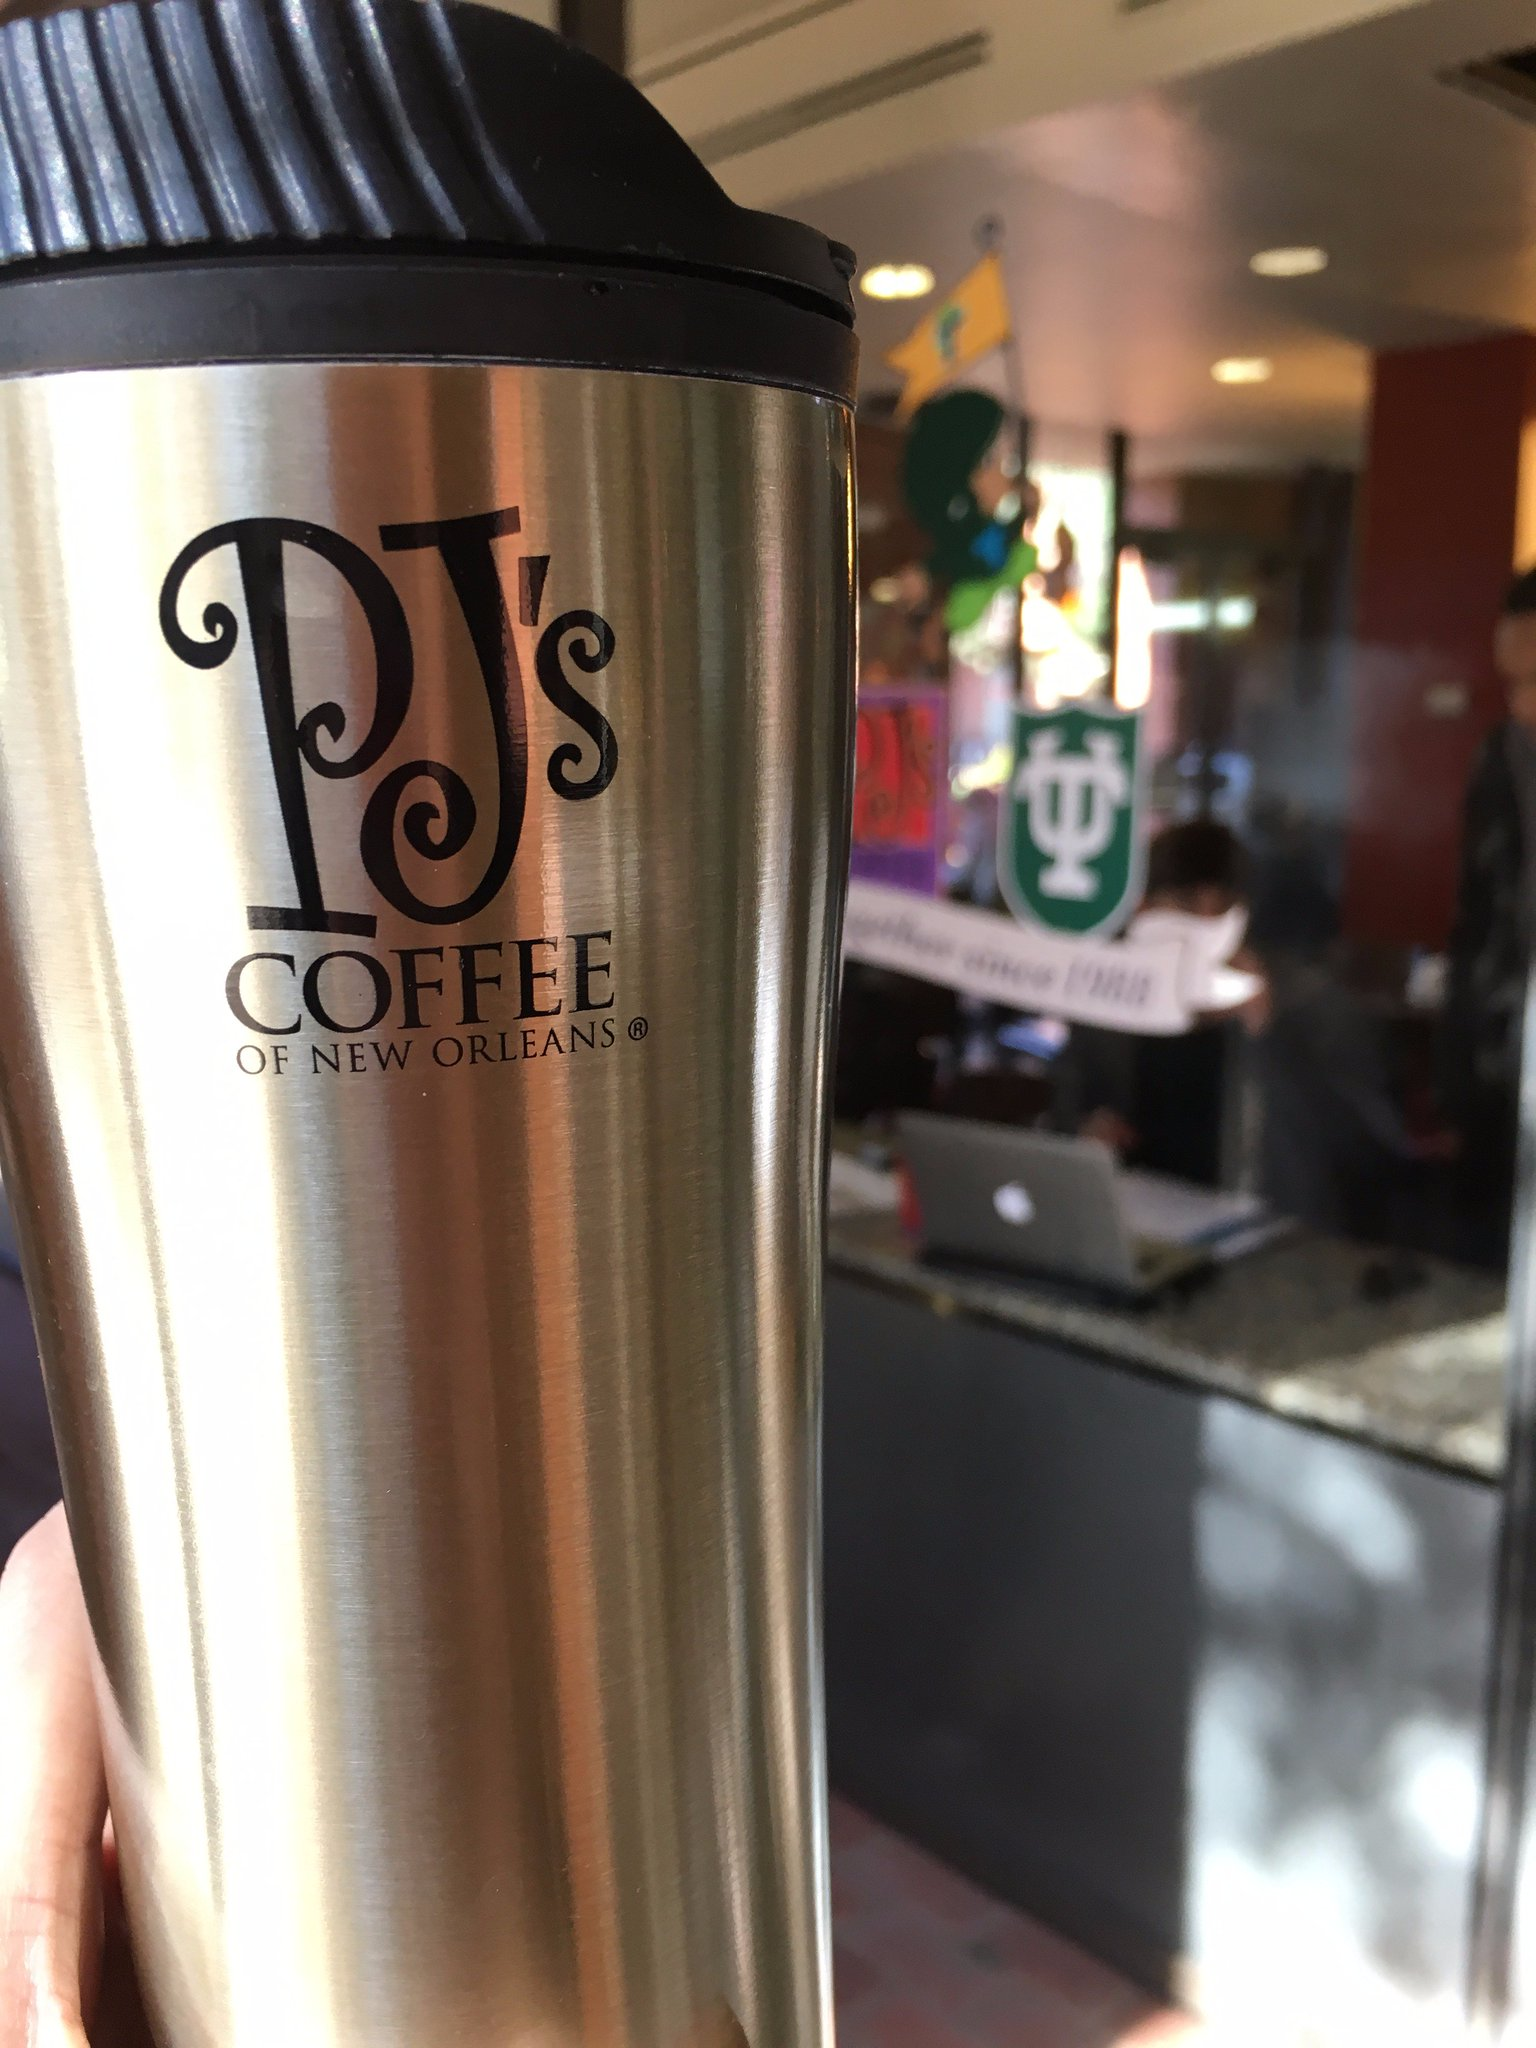 We reduce waste with reusable mugs for our @pjscoffee! @TulaneDining, how do you recycle or reduce waste? #TulaneRecycles @GreenTulane https://t.co/G5cr1jsnf4